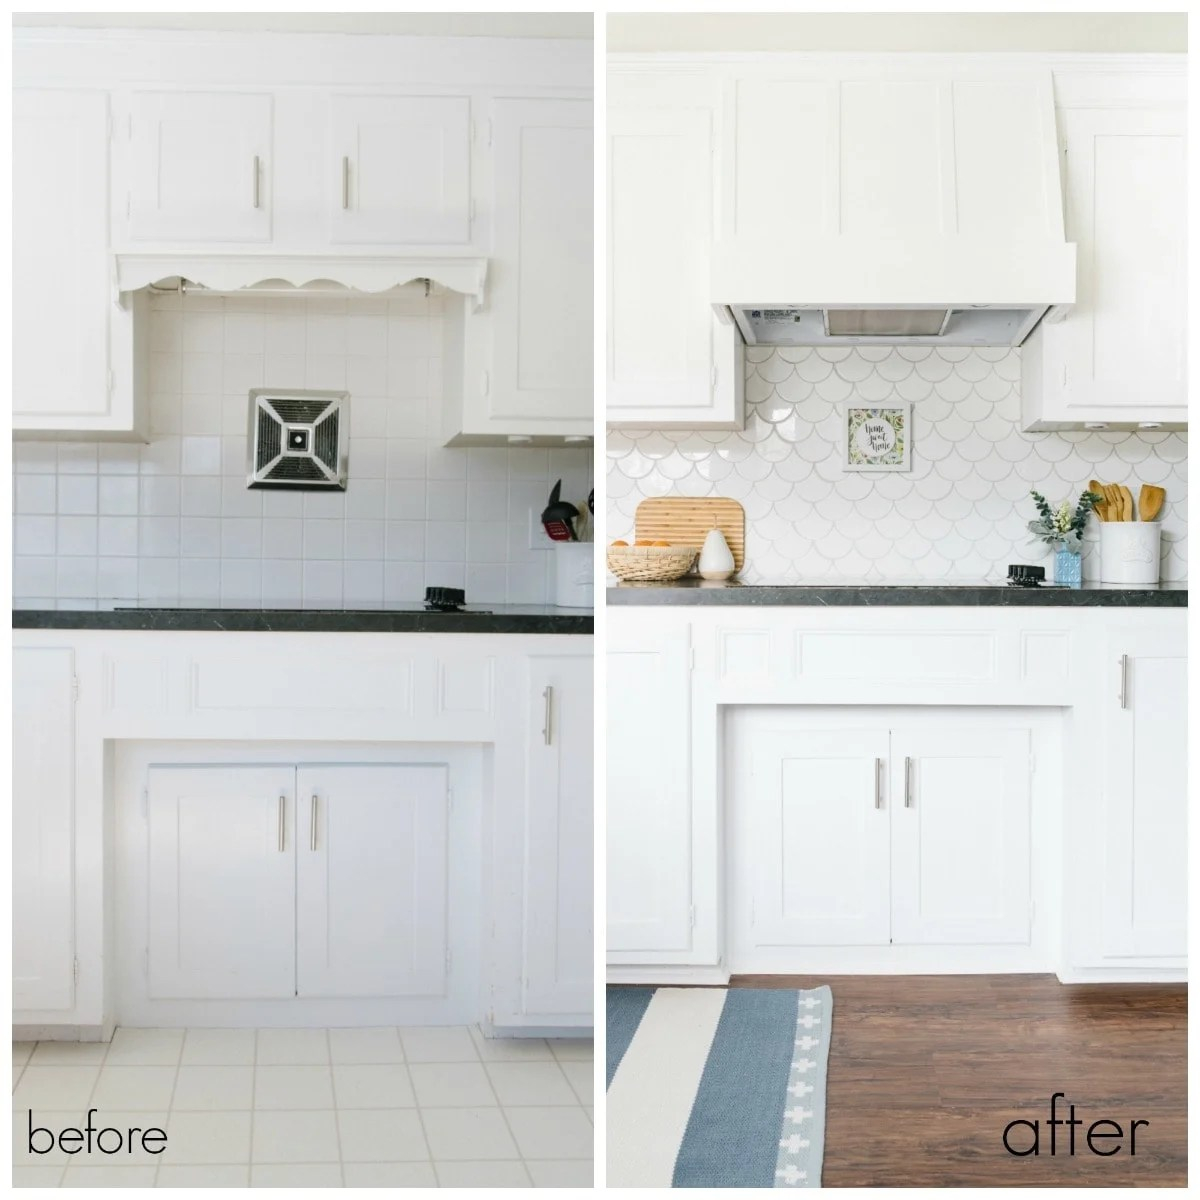 before and after of old range hood and new DIY hood